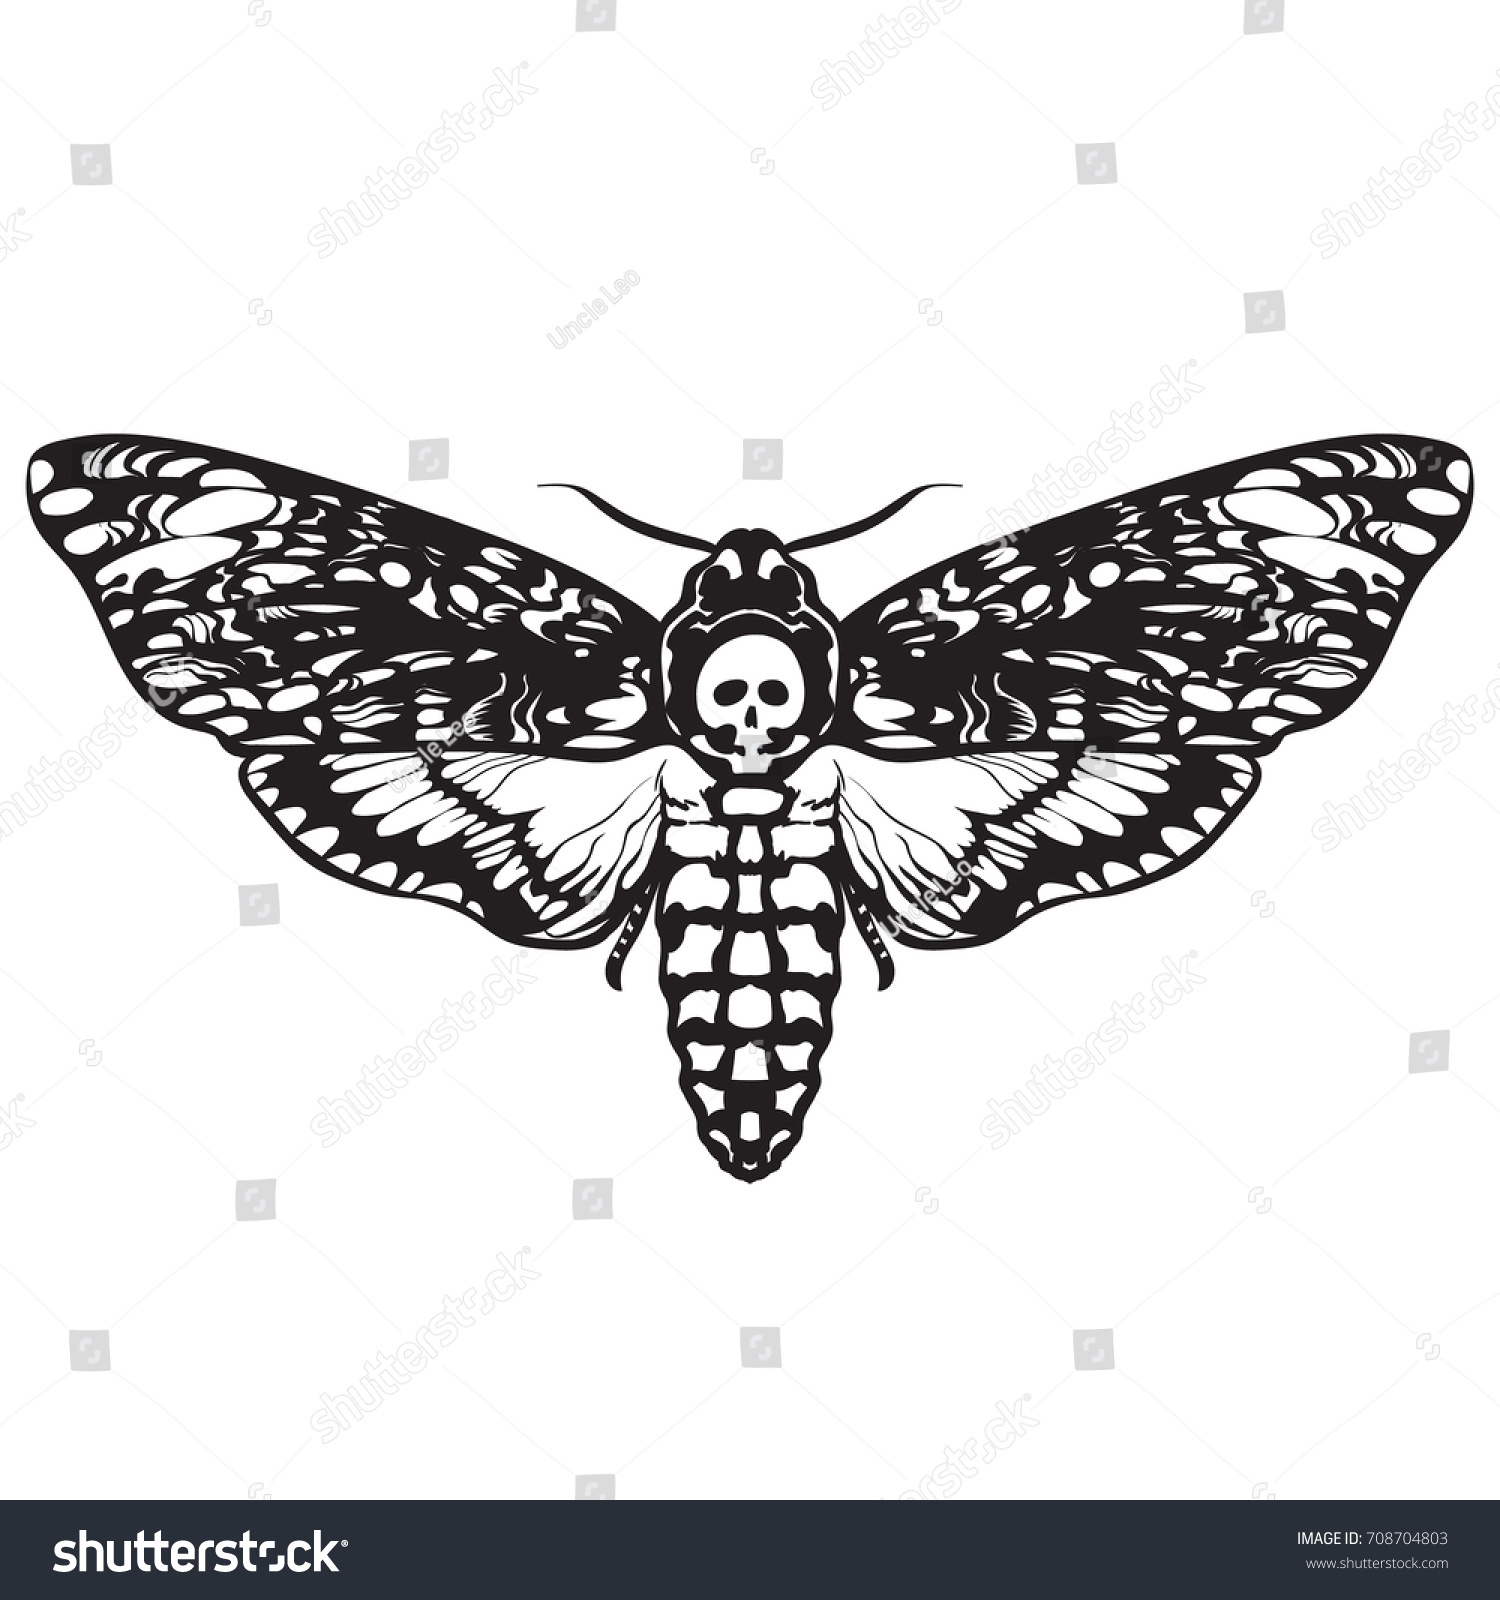 deathshead hawk moth black white halloween stock vector (royalty